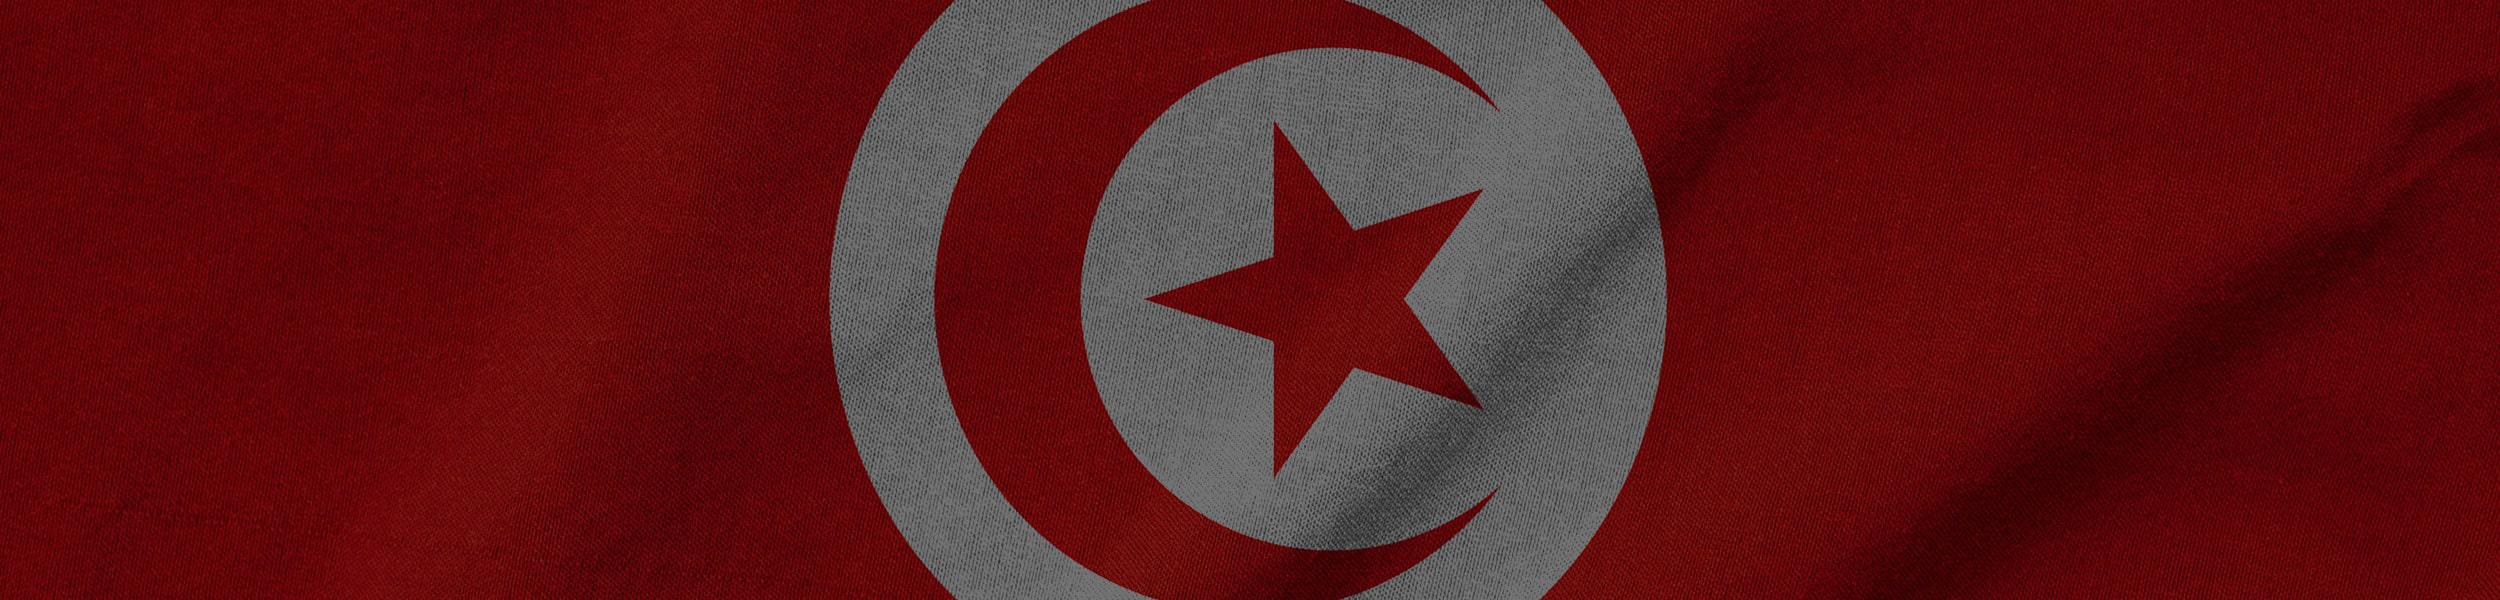 FOR A TUNISIA WHERE EVERYONE CAN LIVE